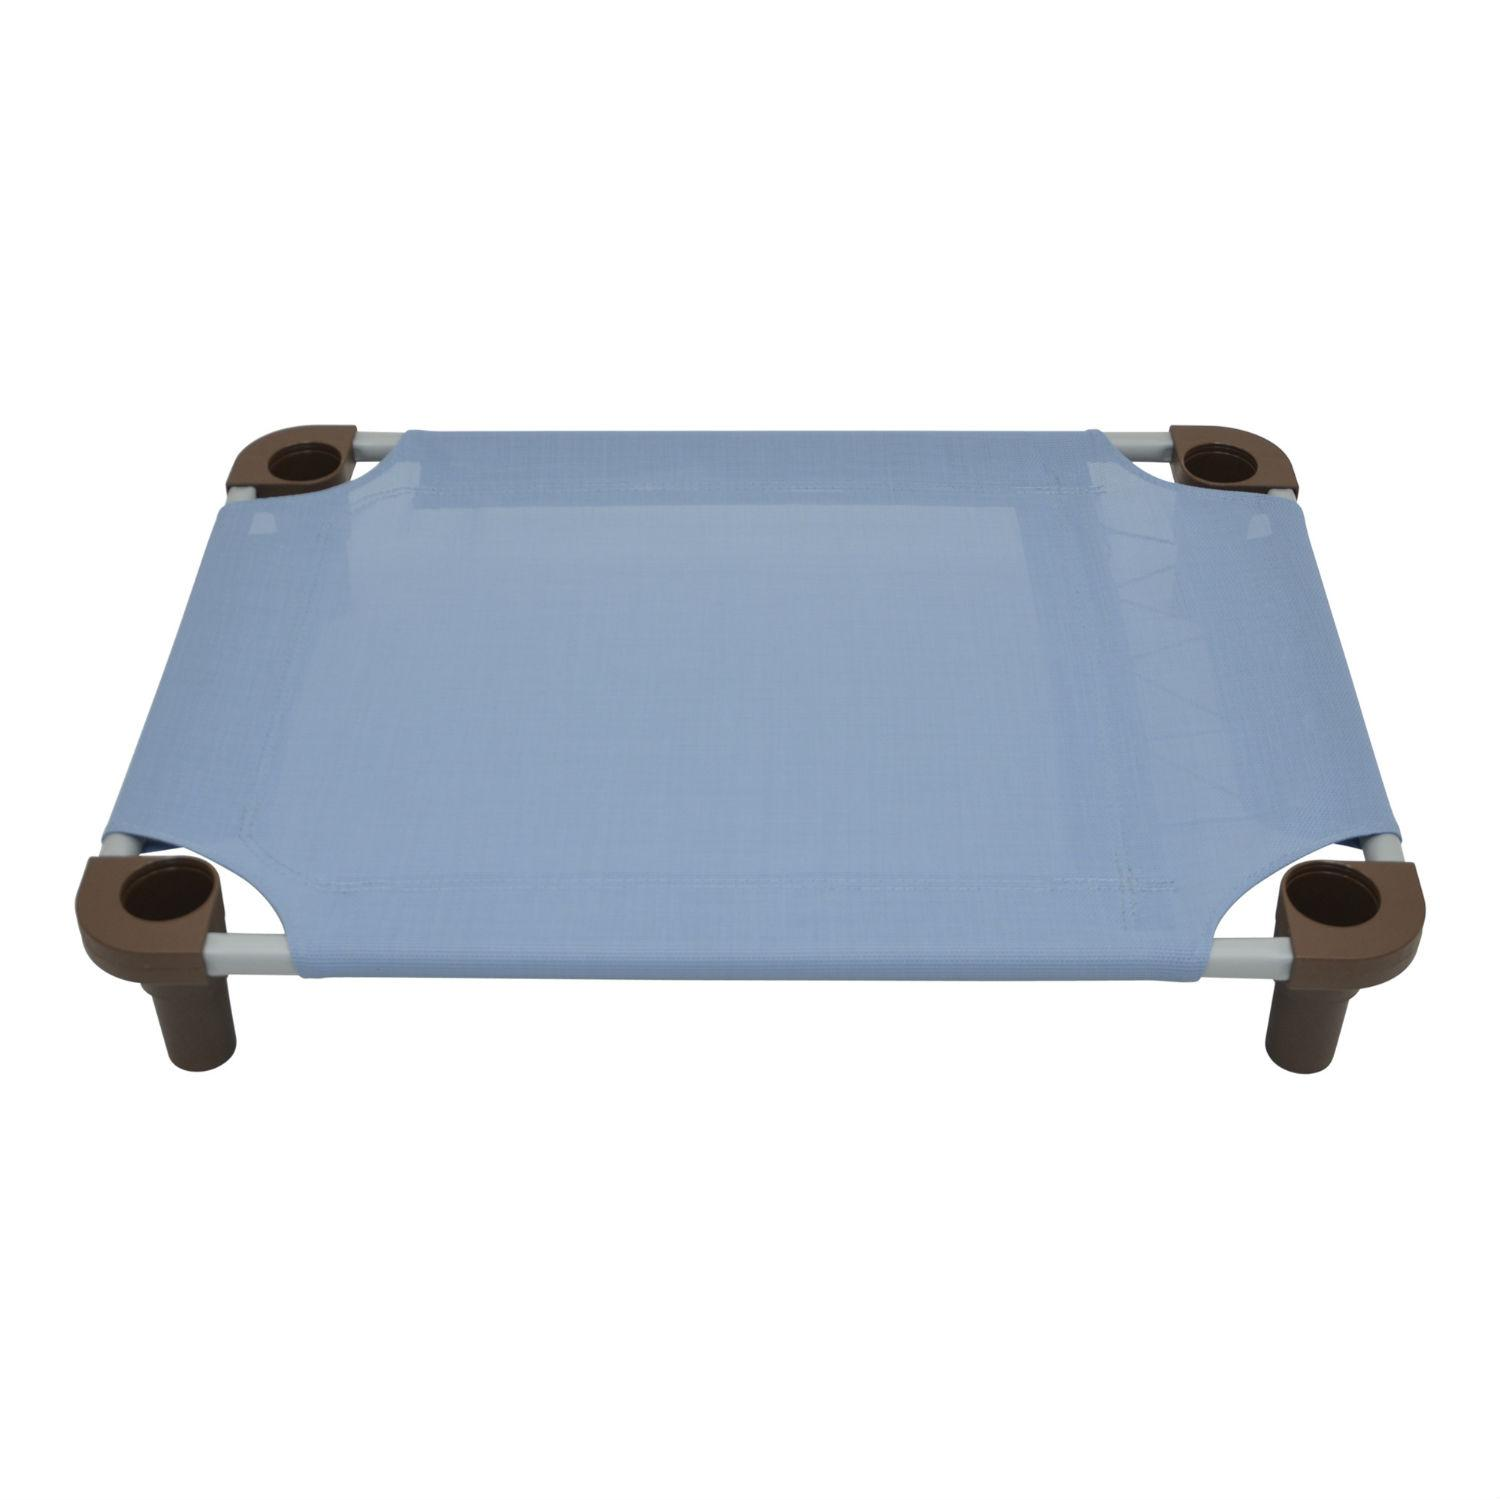 Solid Color Premium Weave Dog Cot - Sistine Blue with Brown Legs